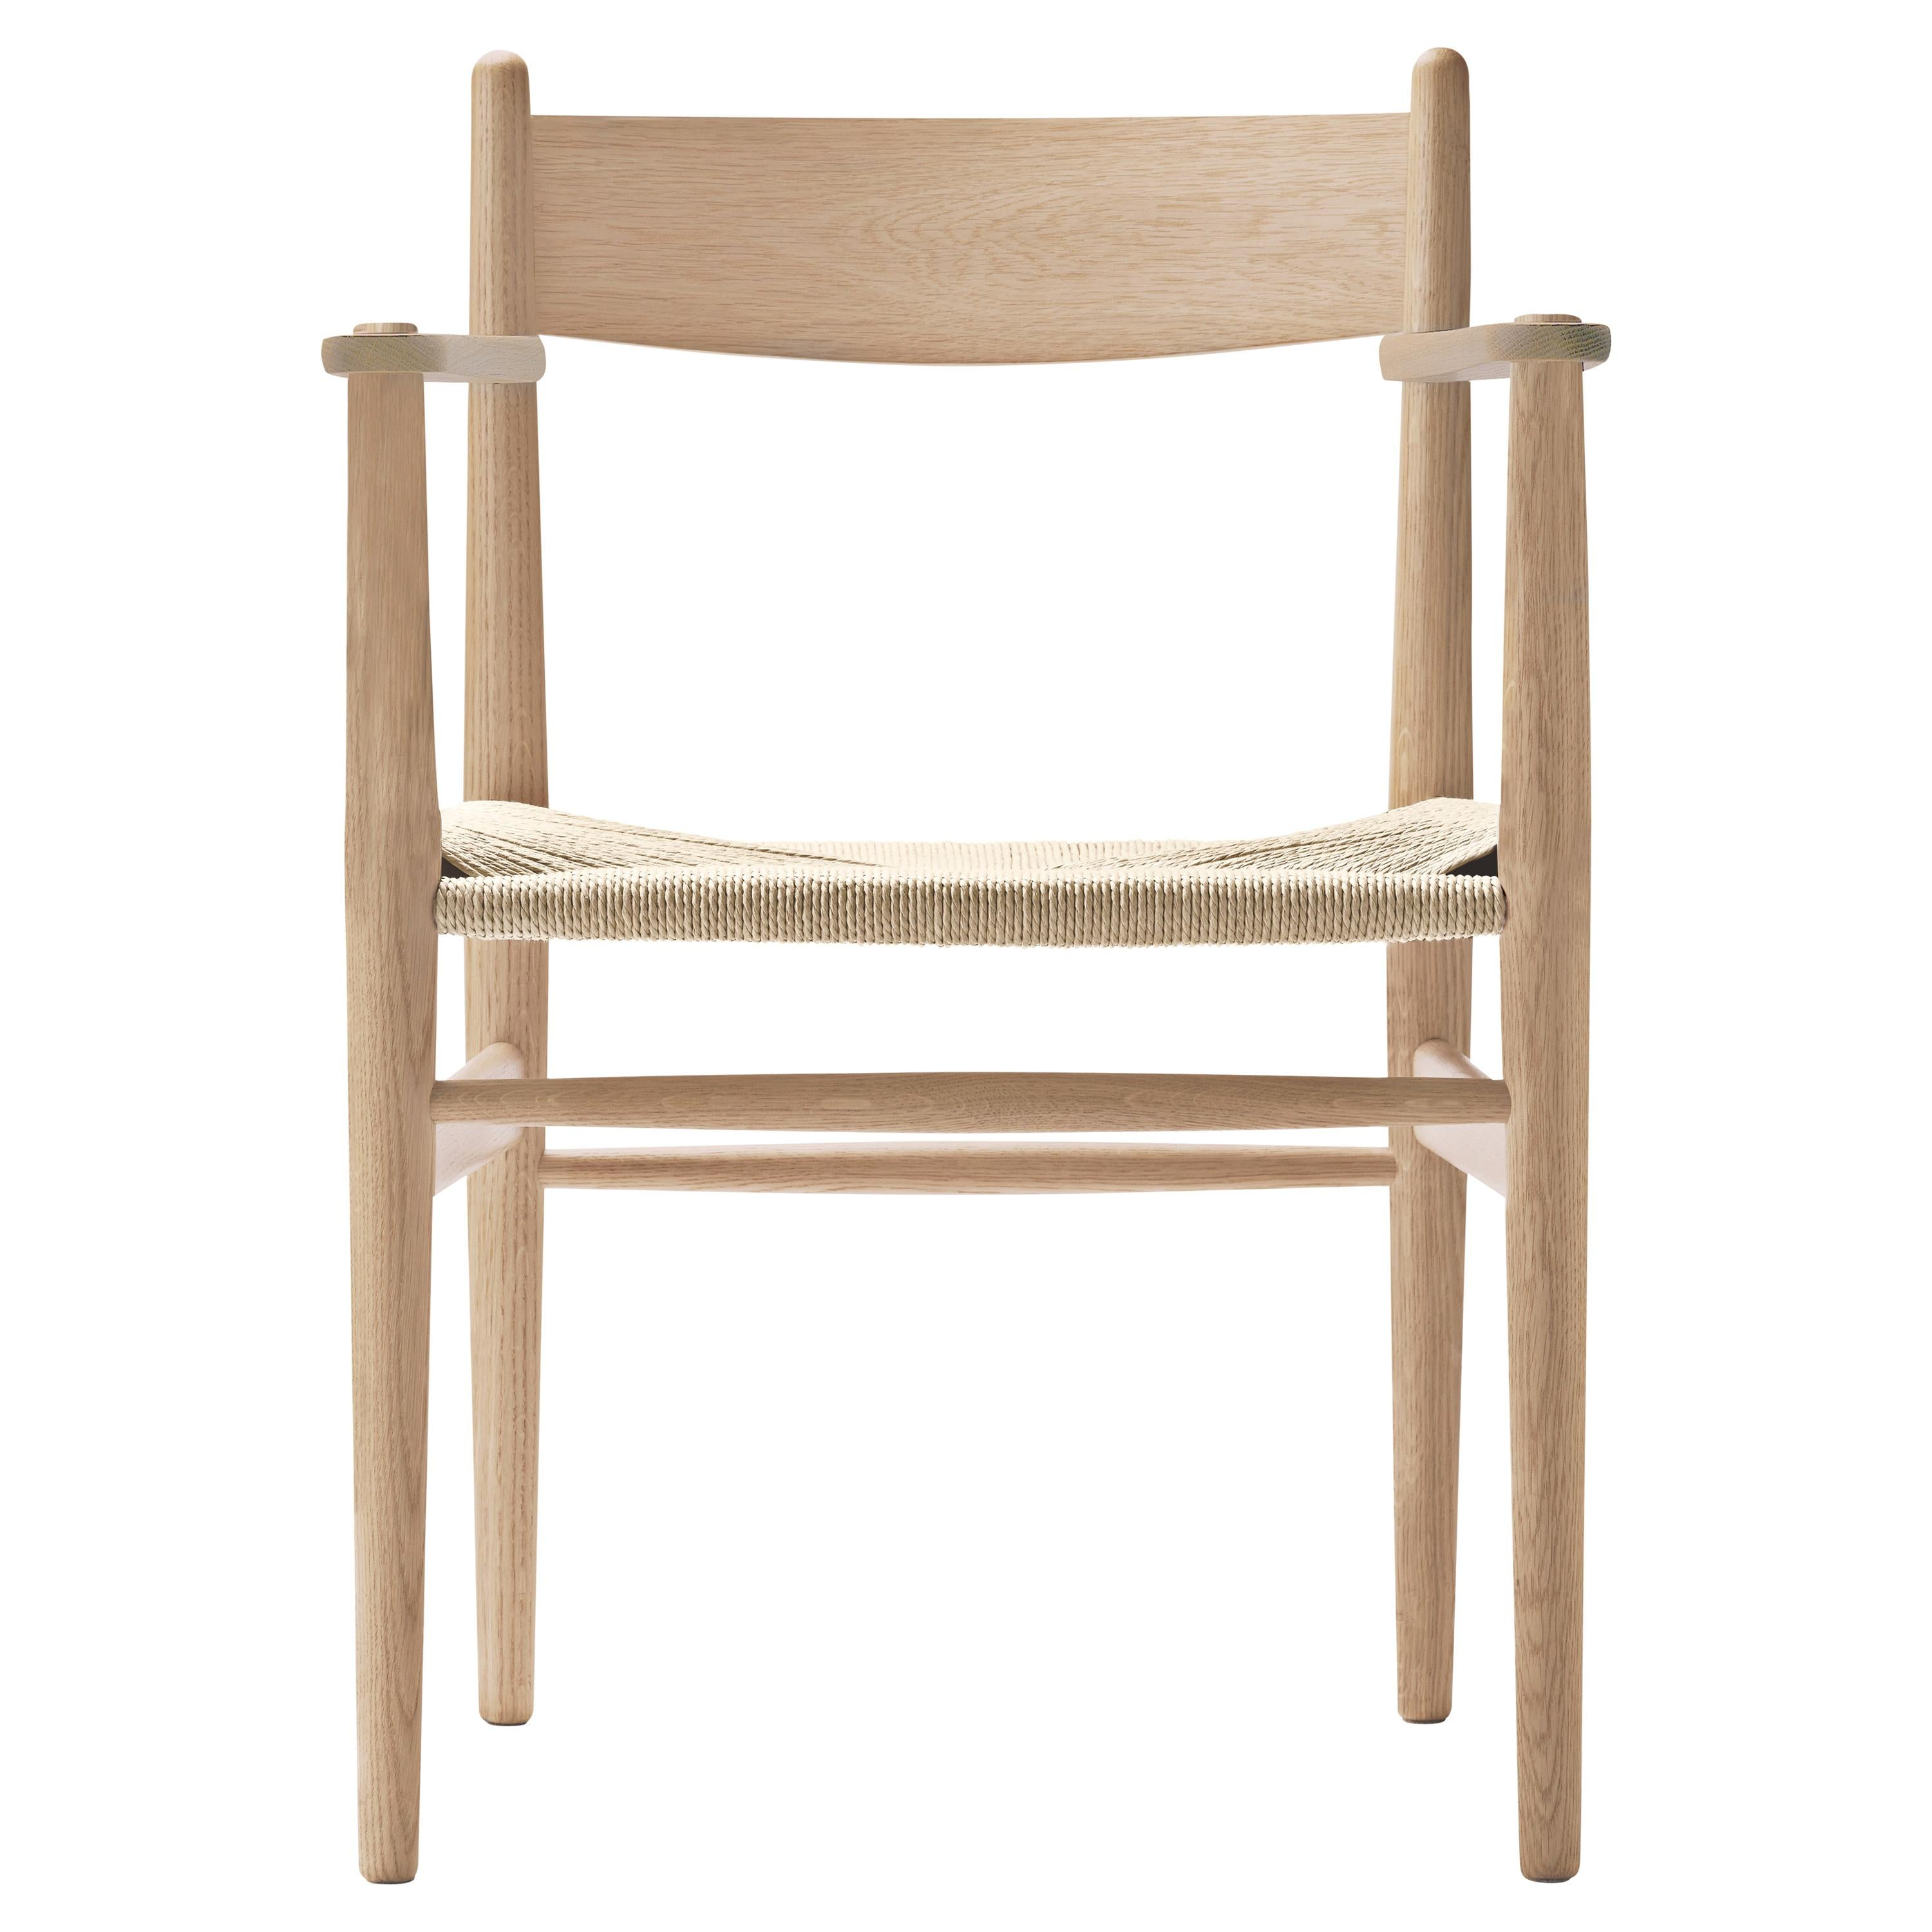 CH37 Dining Chair in Wood Finishes with Natural Papercord Seat by Hans J. Wegner